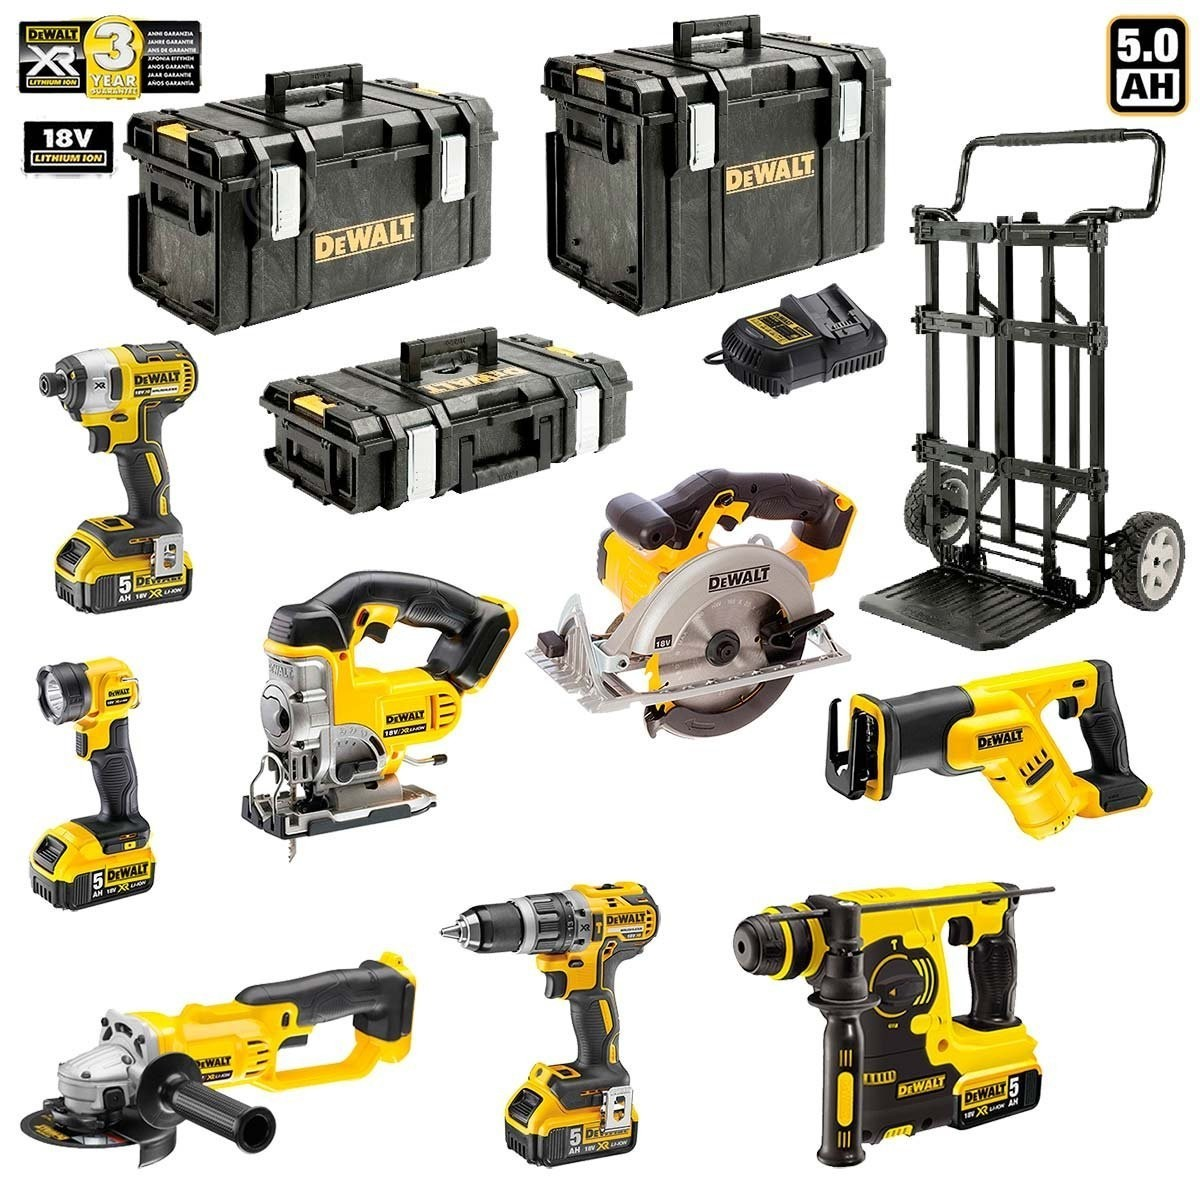 dewalt pack 8 outils lectroportatifs dck xp8mp4 4 x5 0ah chargeur 3 mallettes de. Black Bedroom Furniture Sets. Home Design Ideas